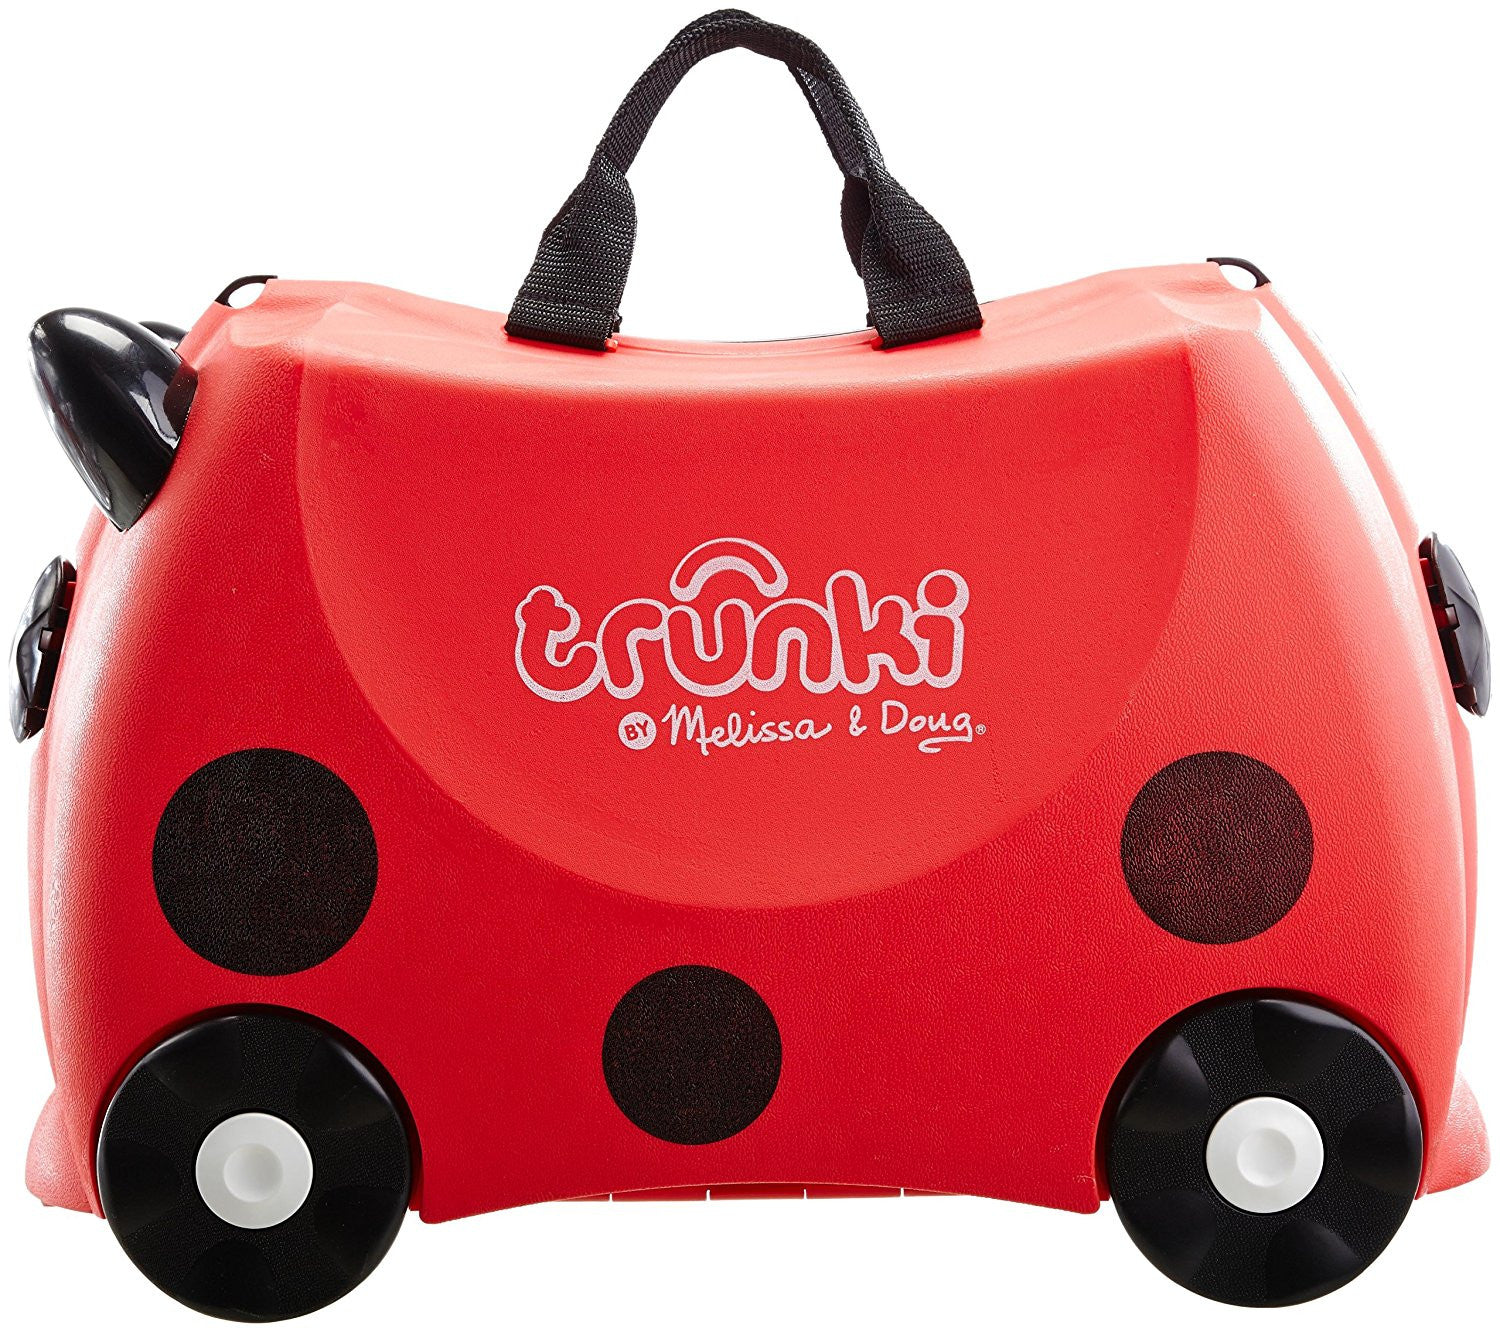 Melissa & Doug Trunki Ruby (Red)